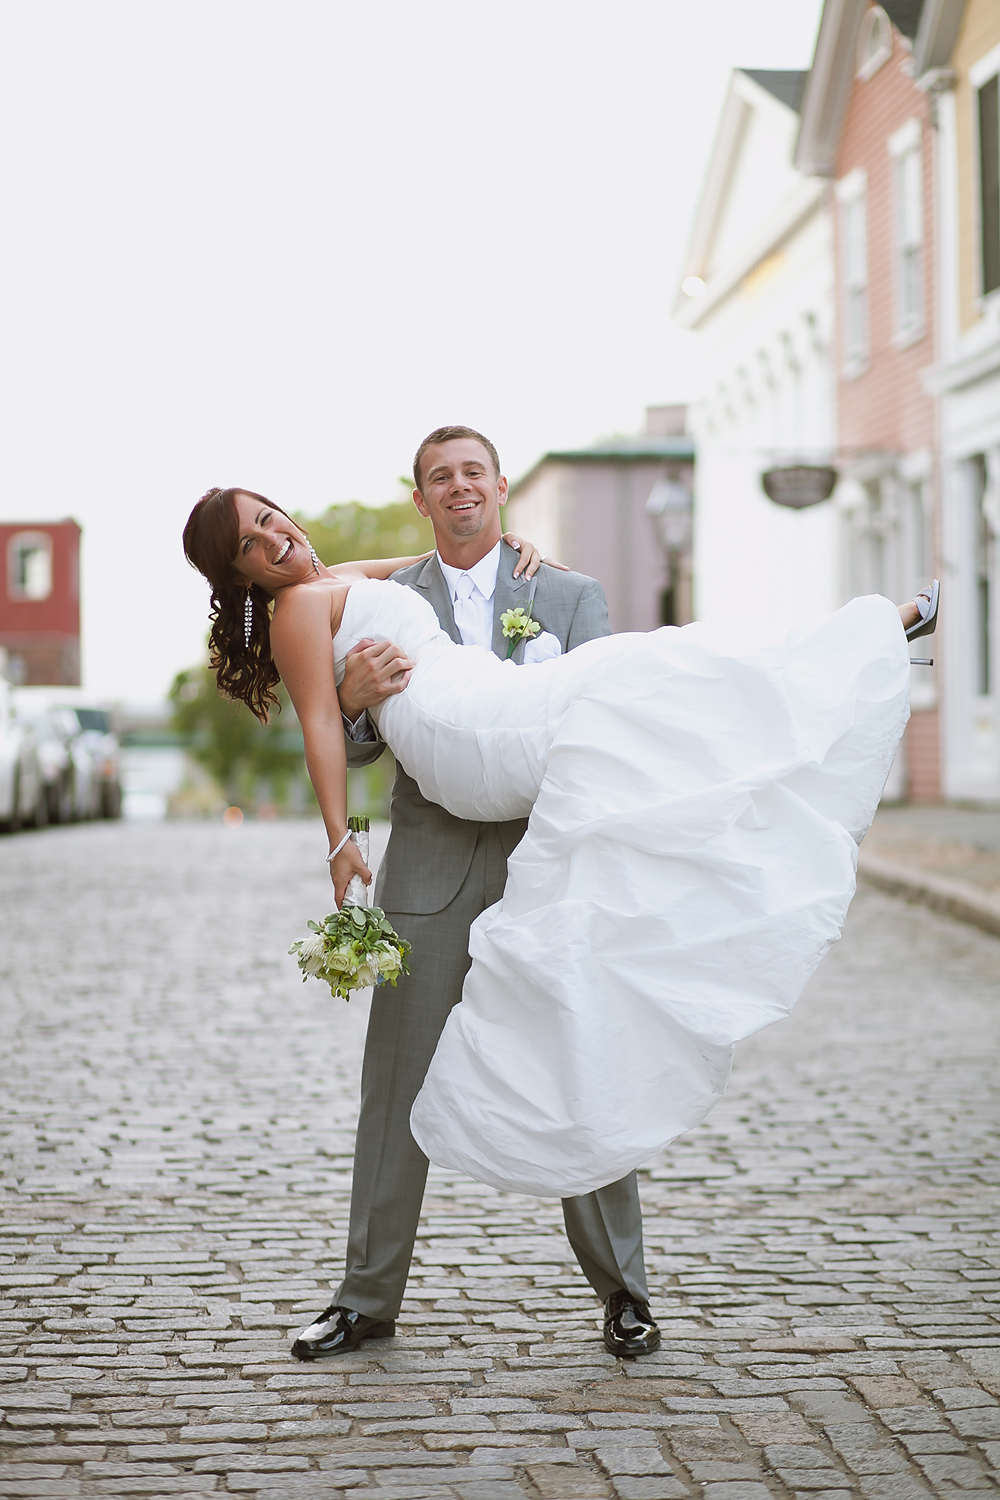 Wedding-Photographer-In-Newport-Rhode-Island-14.JPG